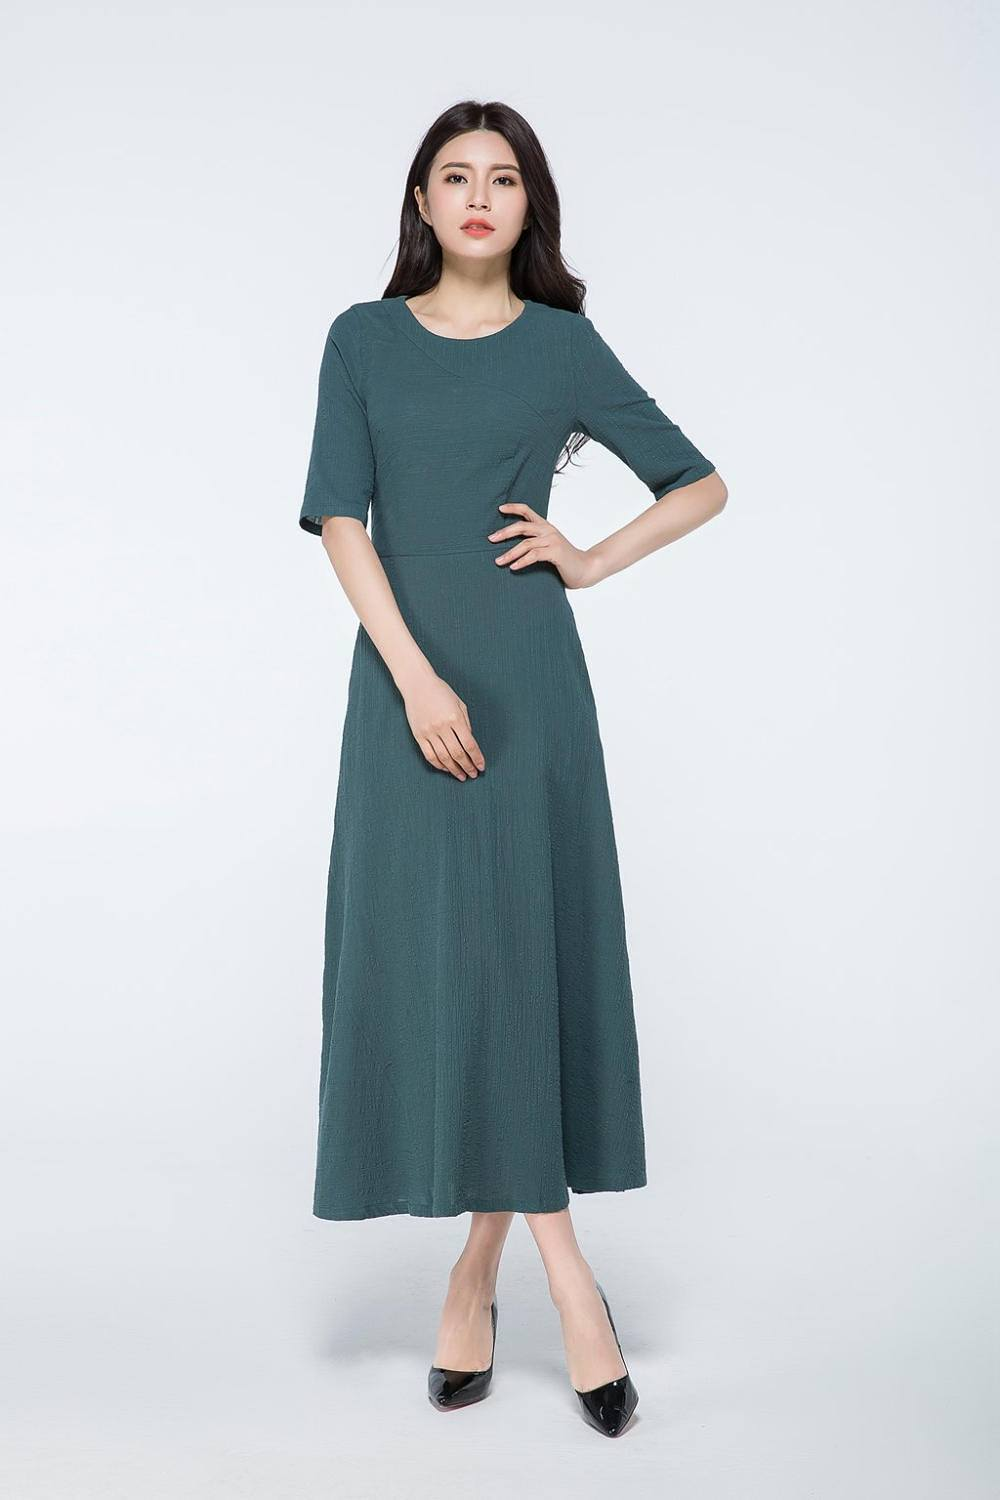 dark green dress, linen maxi dress, maxi dress with sleeves, linen dress, linen dress pattern, womens dresses, made to order dress  C1062